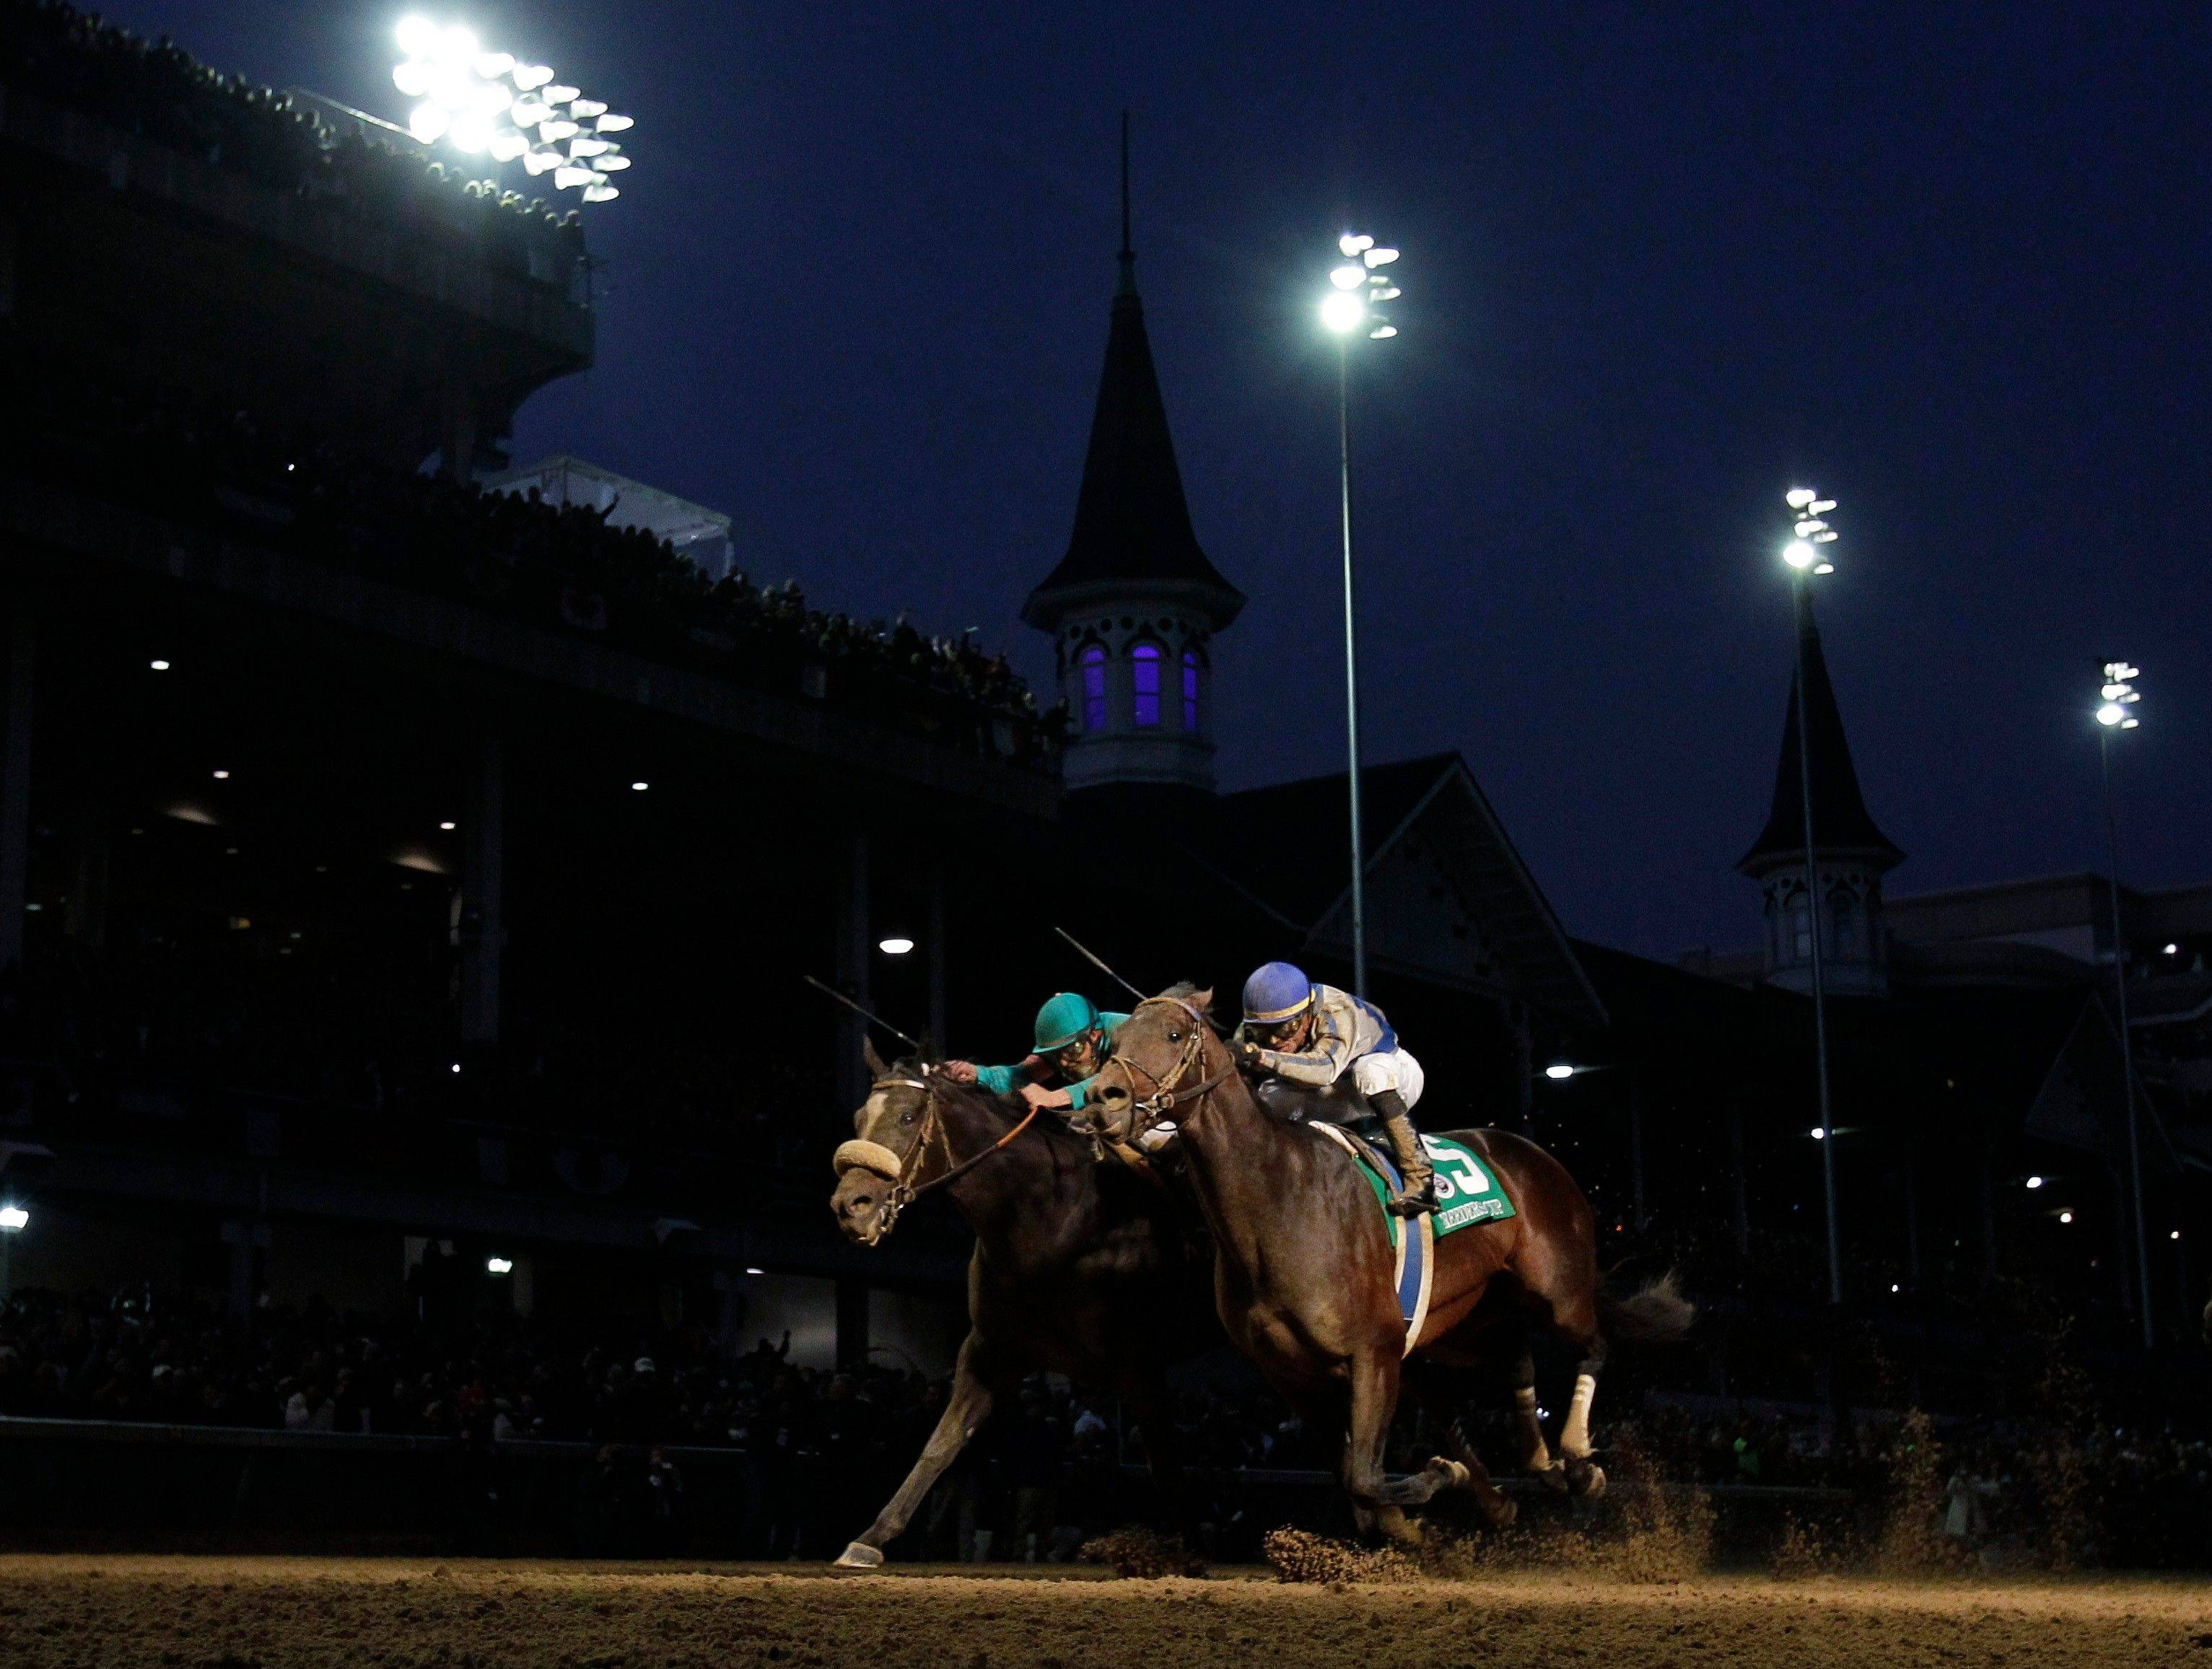 Garrett Gomez, right, rides Blame to victory during the Classic race at the Breeder's Cup horse races at Churchill Downs on Nov. 6. Mike Smith, riding Zenyatta, finished second.